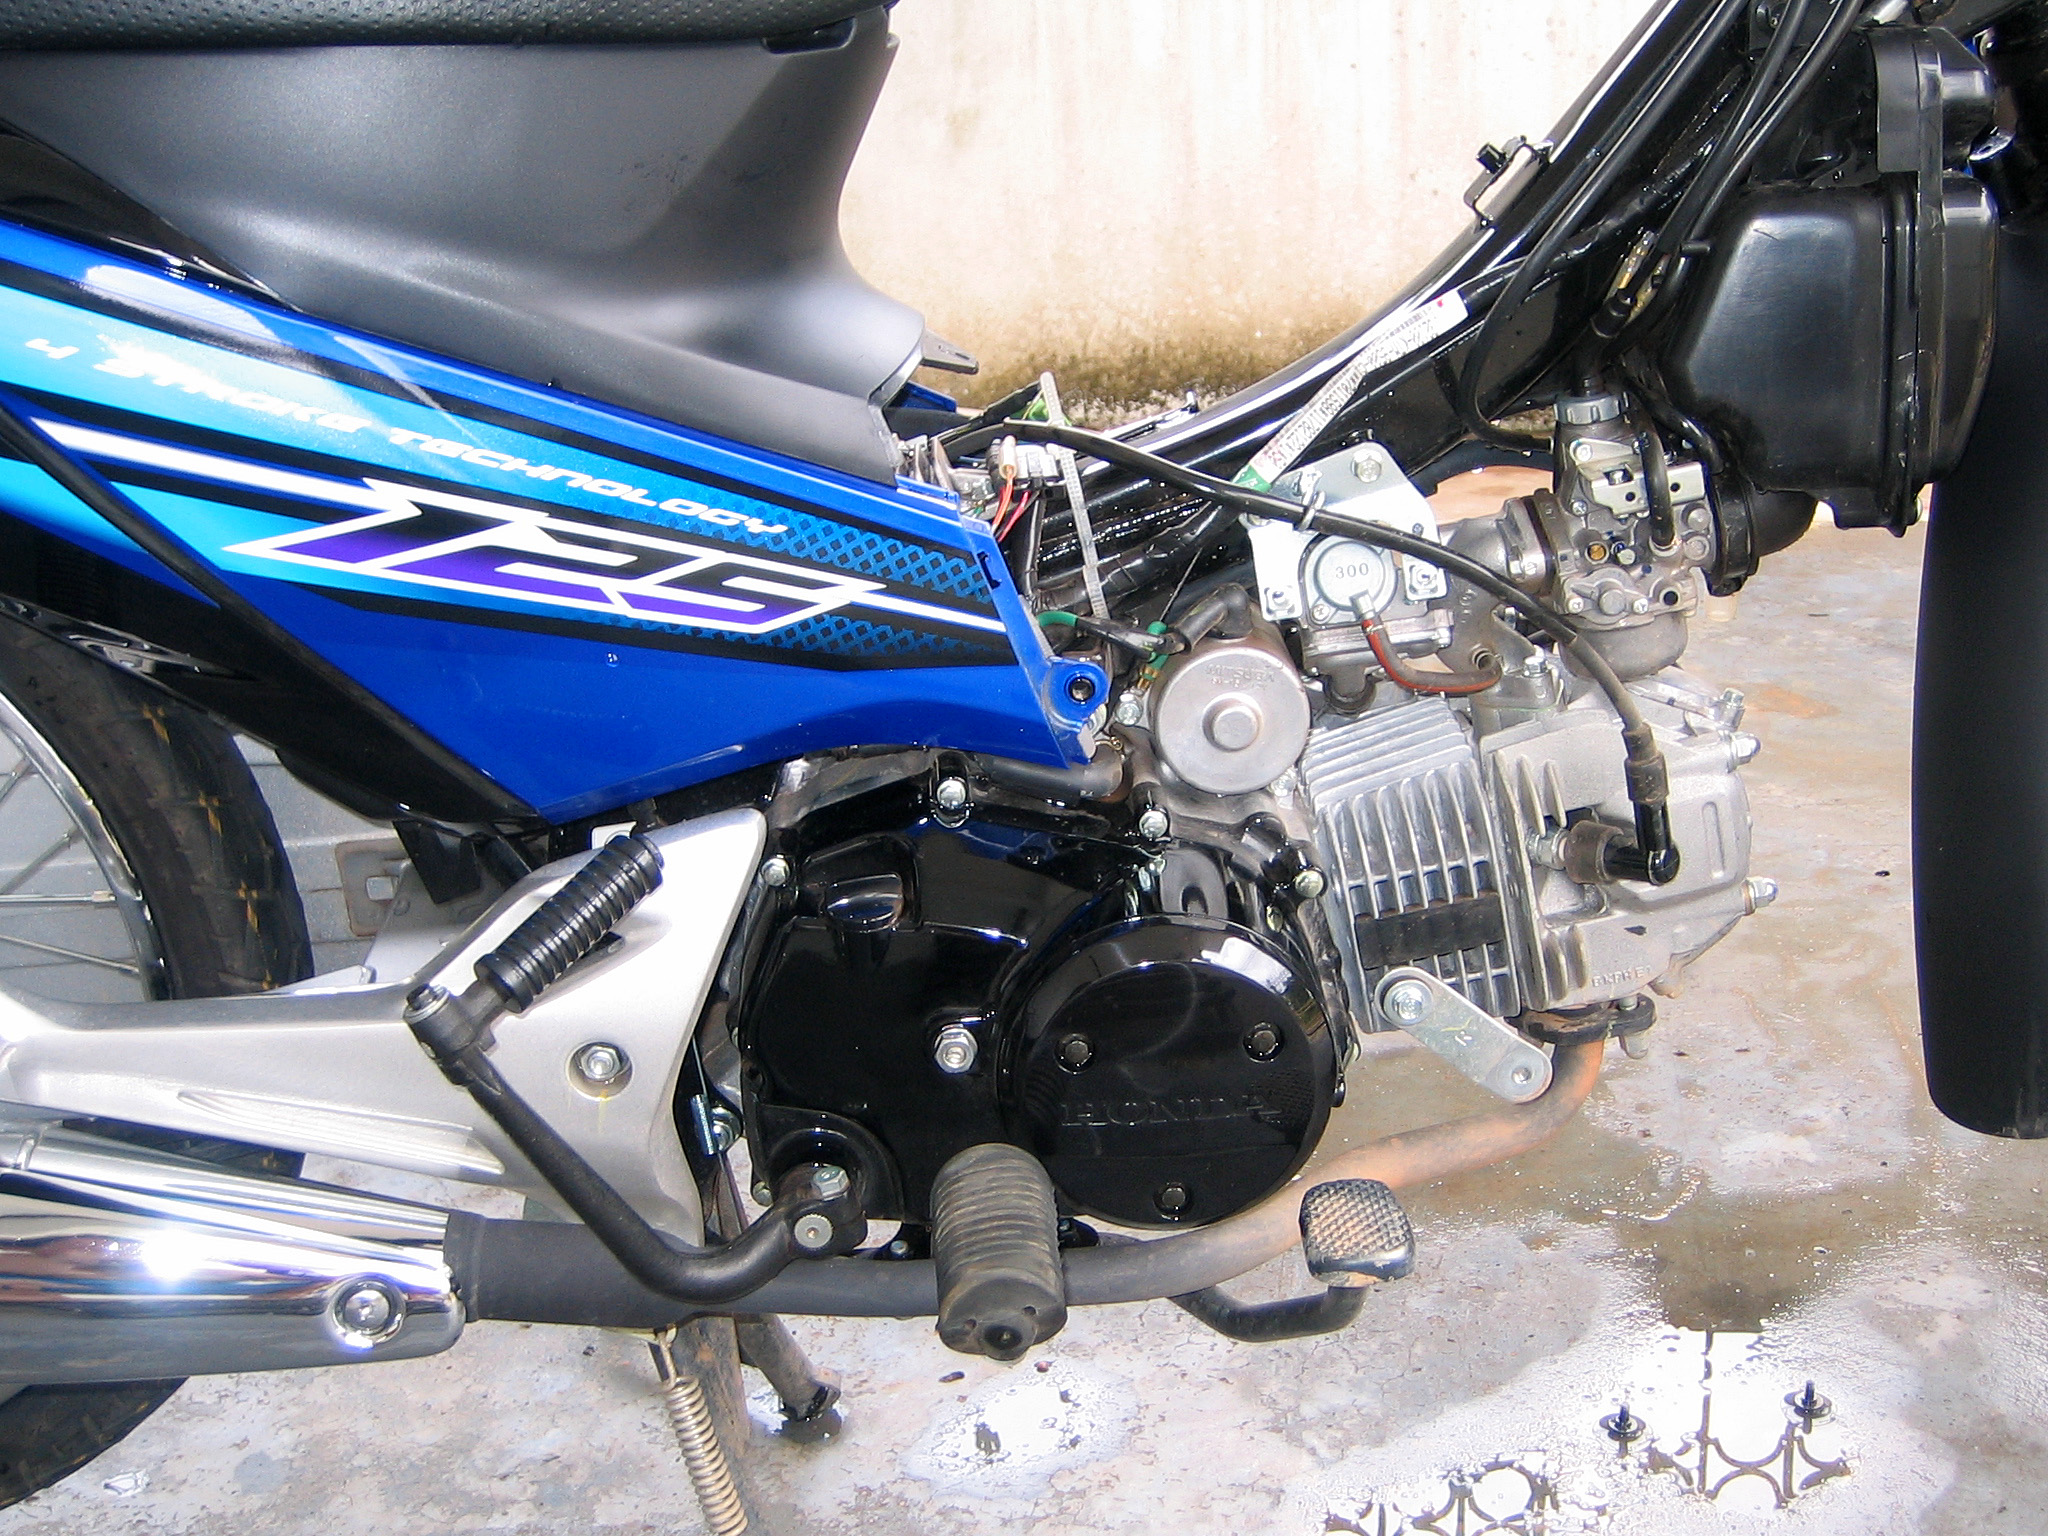 Honda Wave I 125 http://commons.wikimedia.org/wiki/File:Honda_Wave_125_S_2007_Engine.jpg